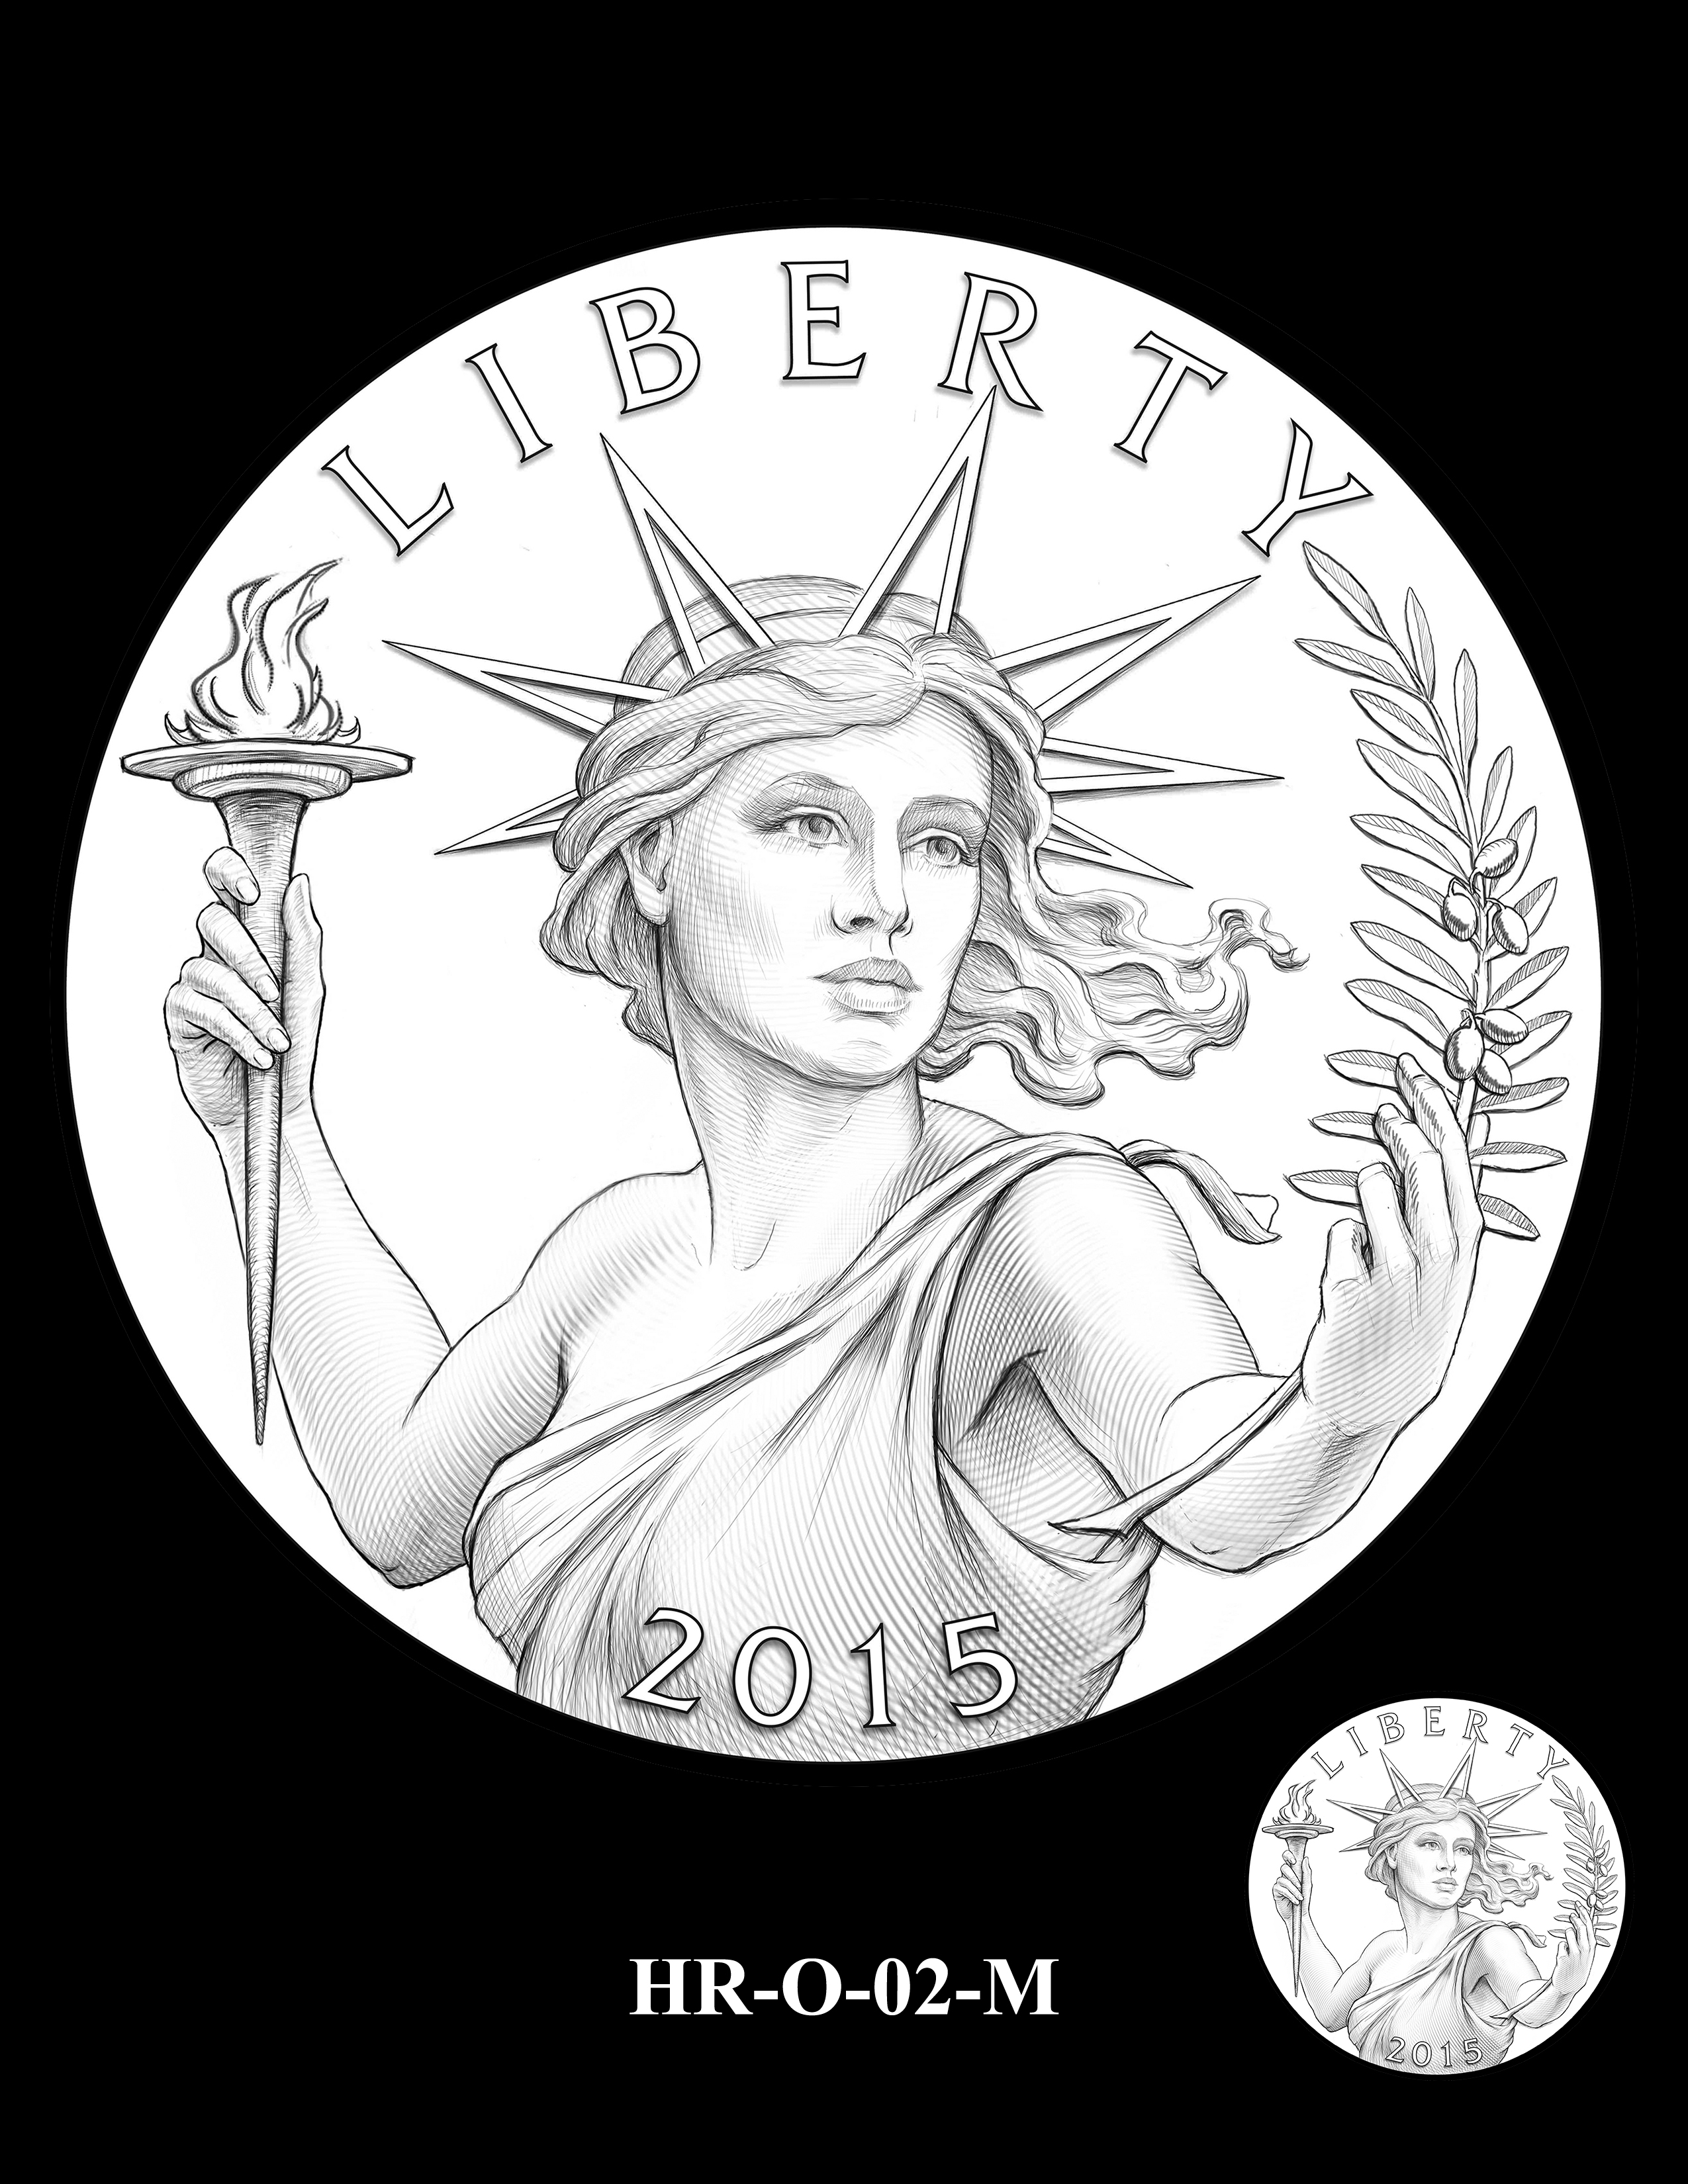 HR-O-02-M -- 2019 American Liberty High Relief 24k Gold Coin/Silver Medal